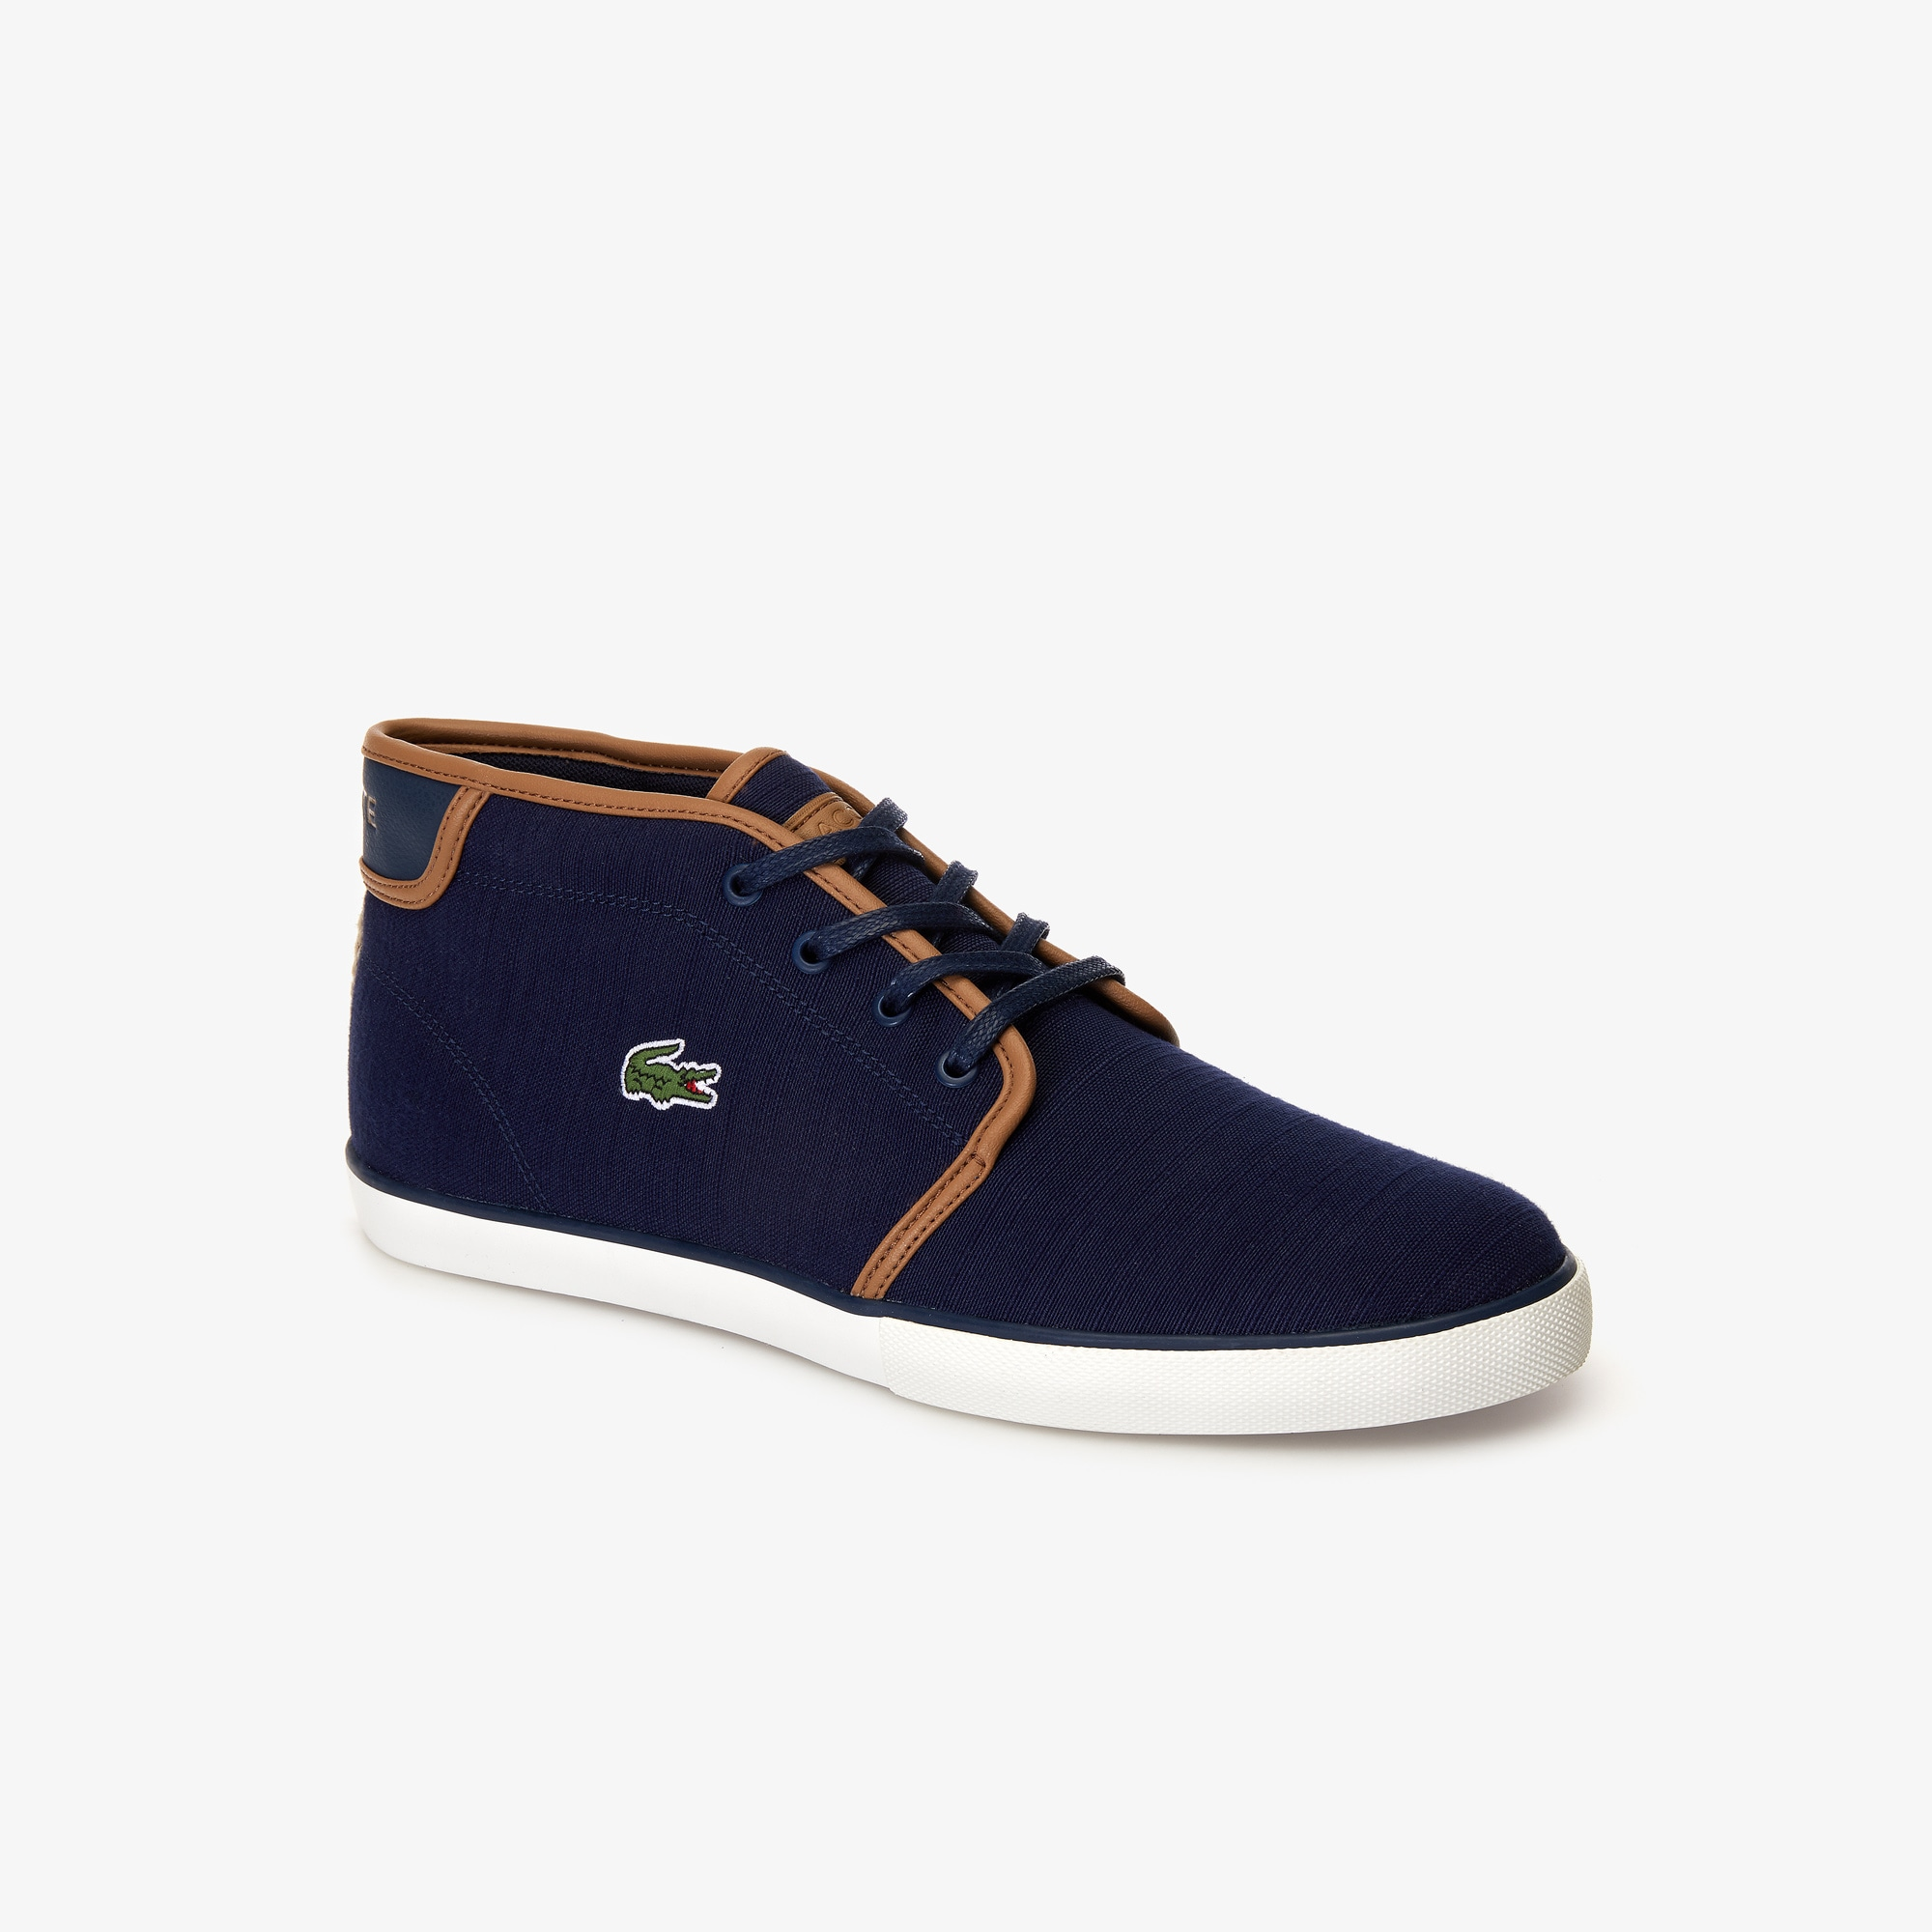 HommeCollection Lacoste HommeCollection Chaussures Lacoste HommeCollection Chaussures Chaussures lc3TJK1u5F